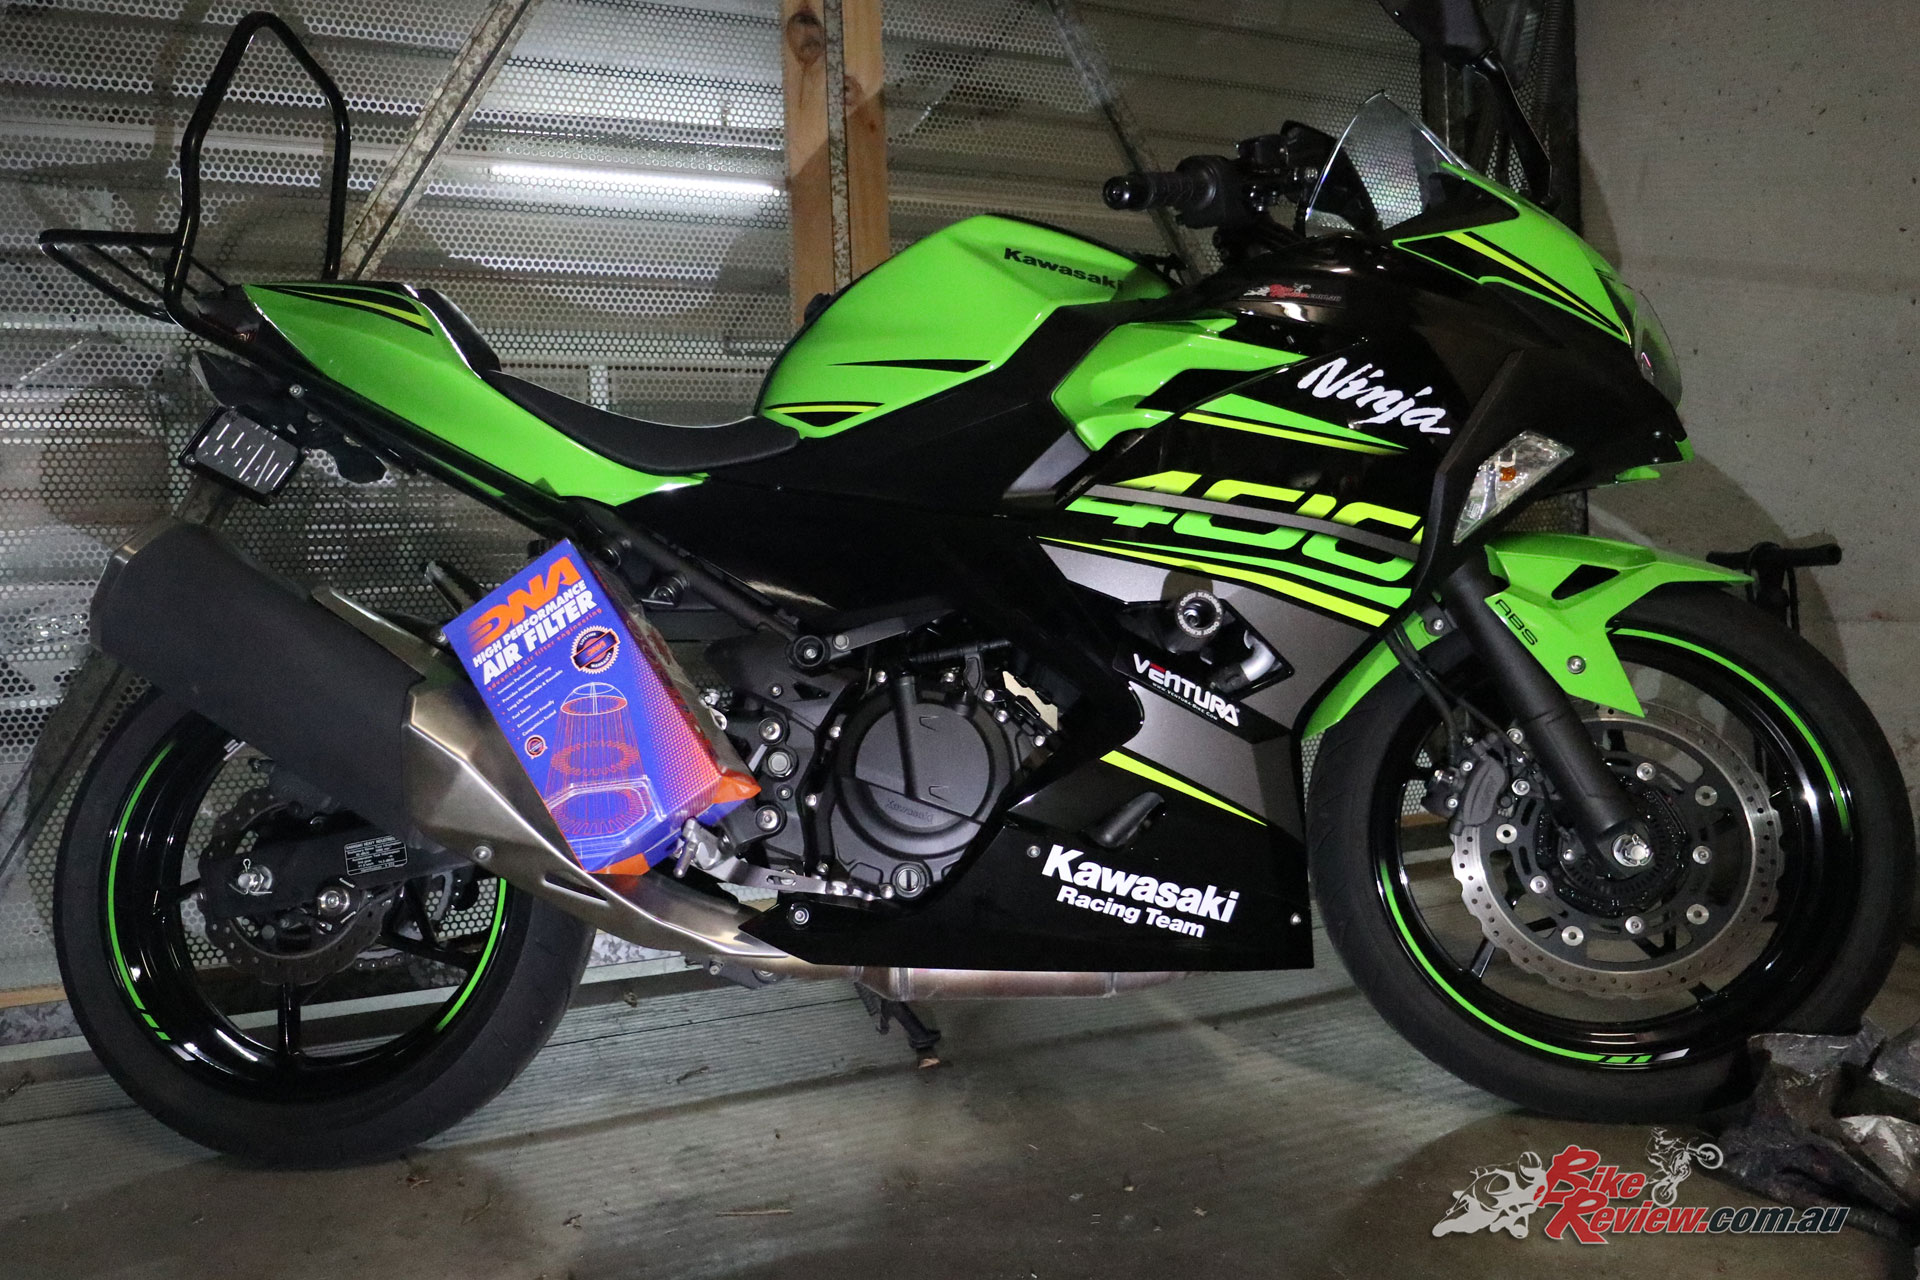 Our Project Ninja 400 fitted with the DNA airfilter!